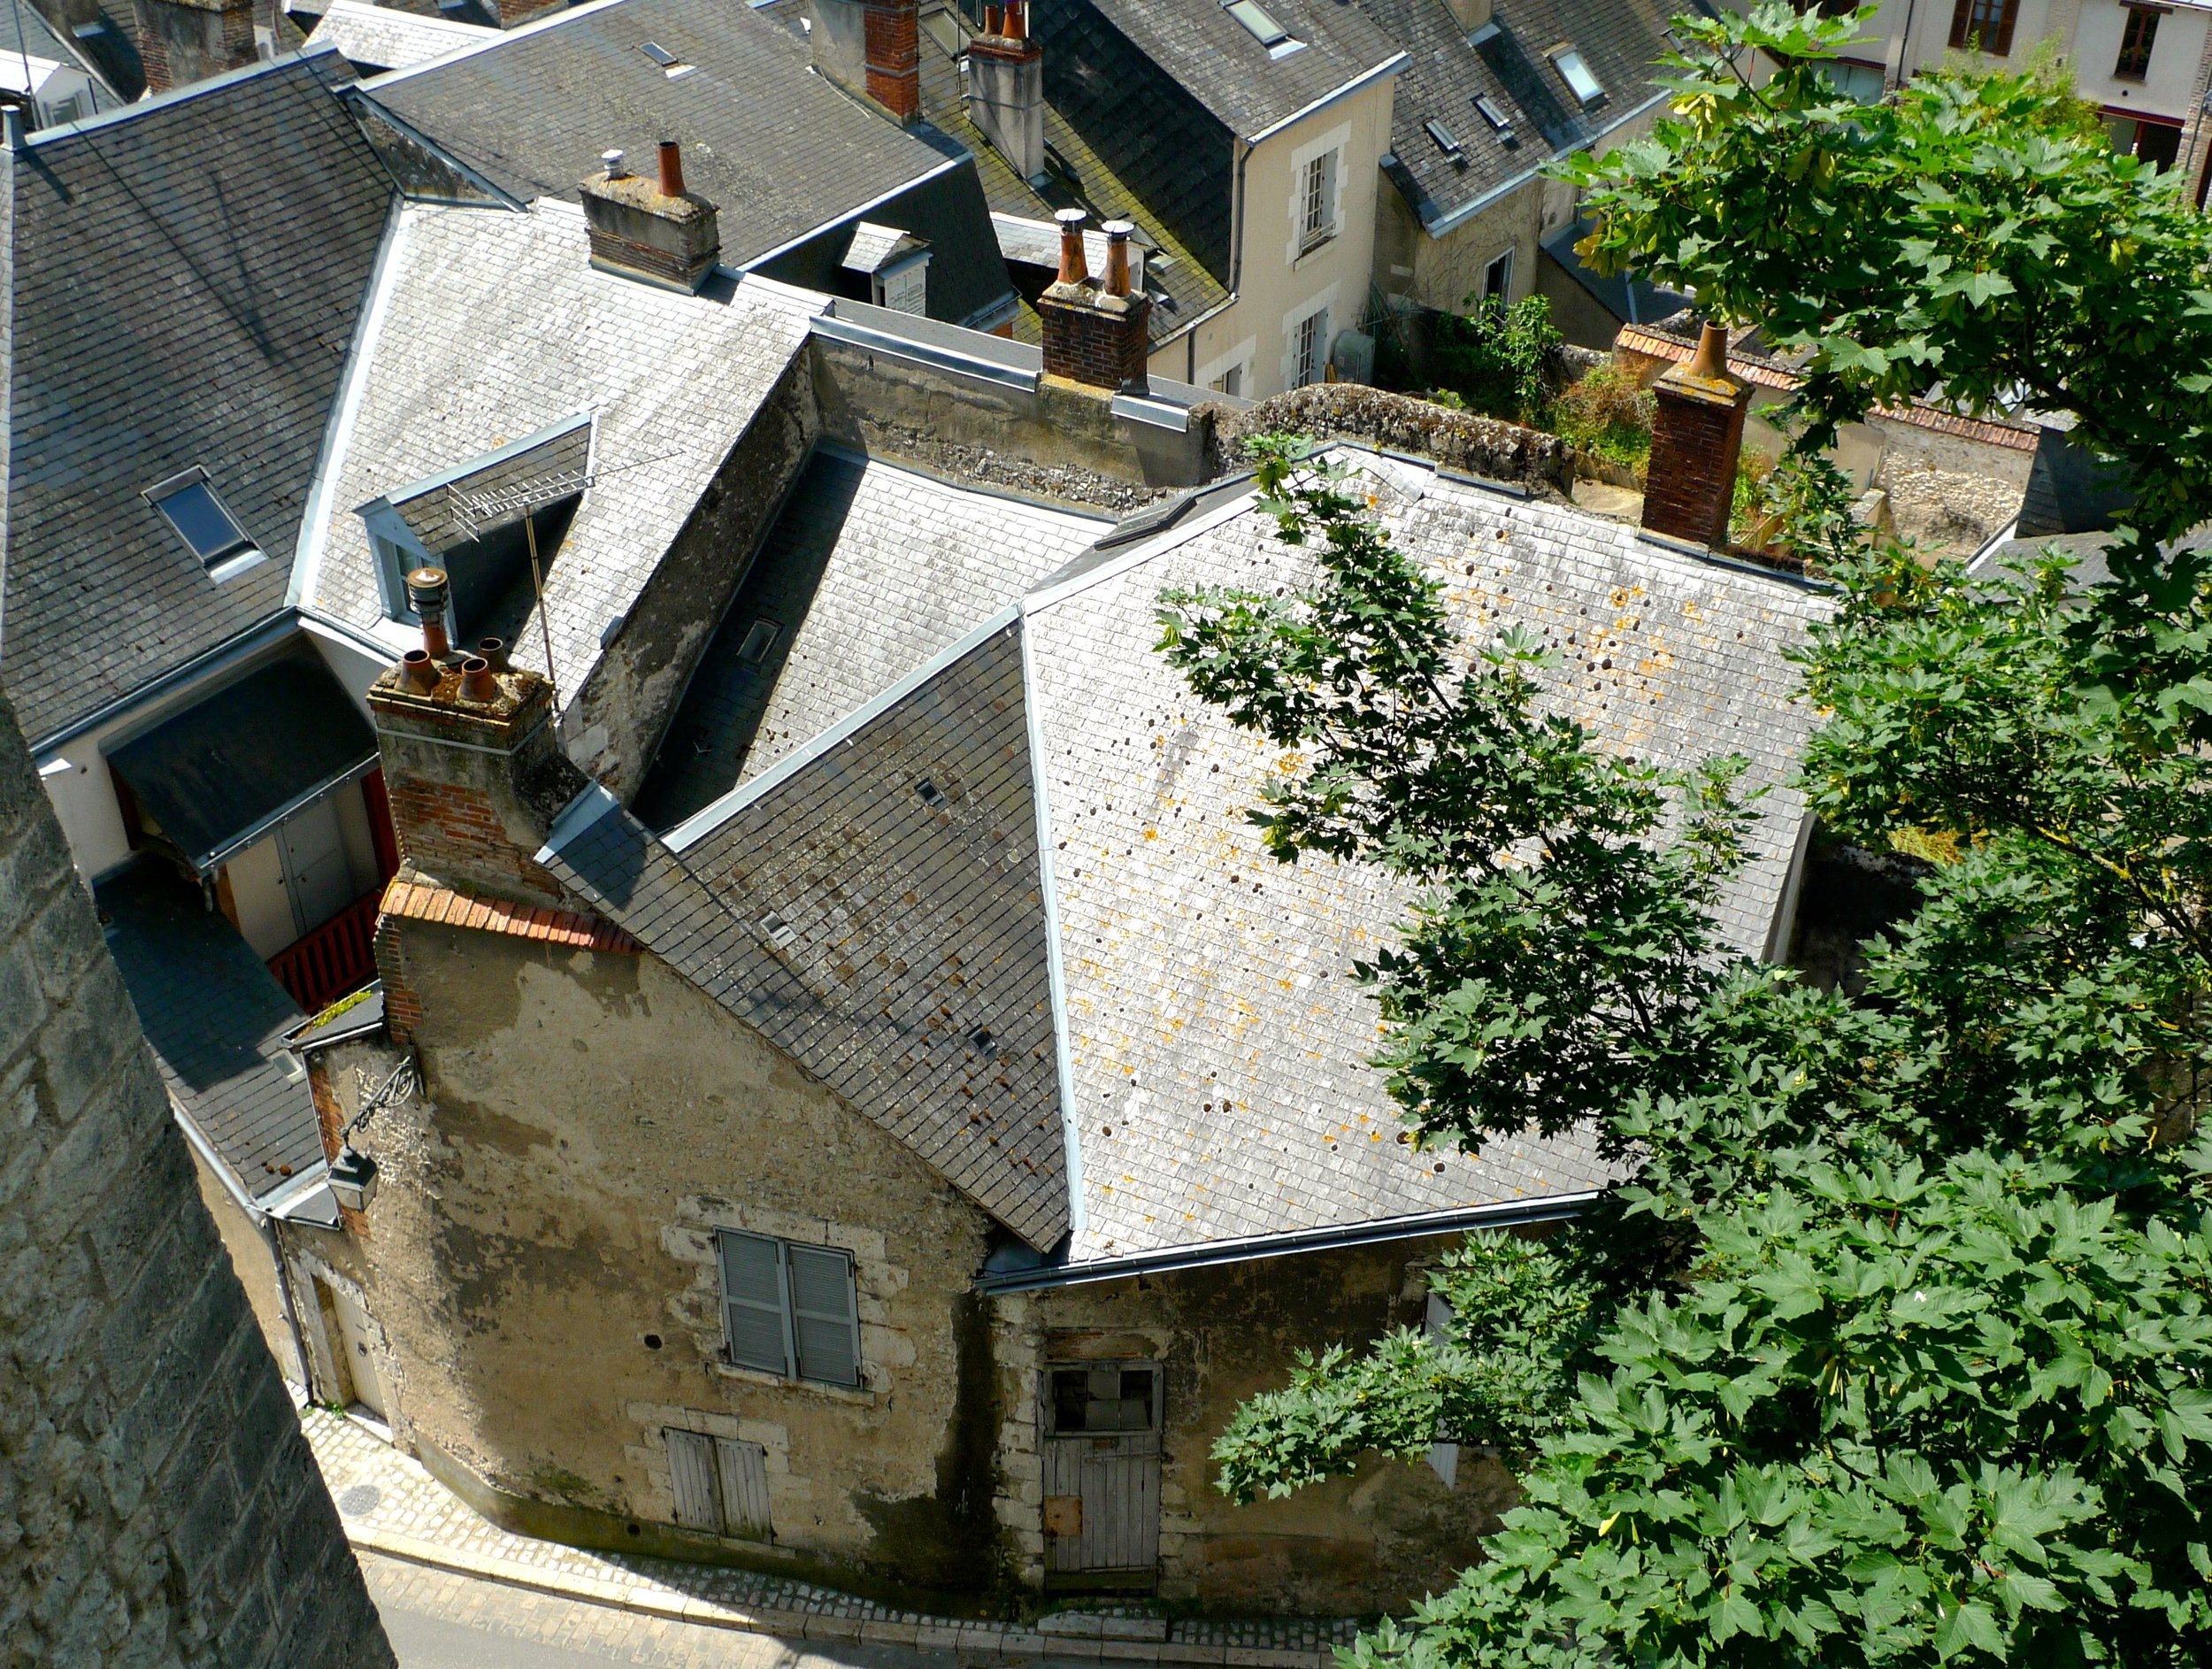 And quirky roofs too